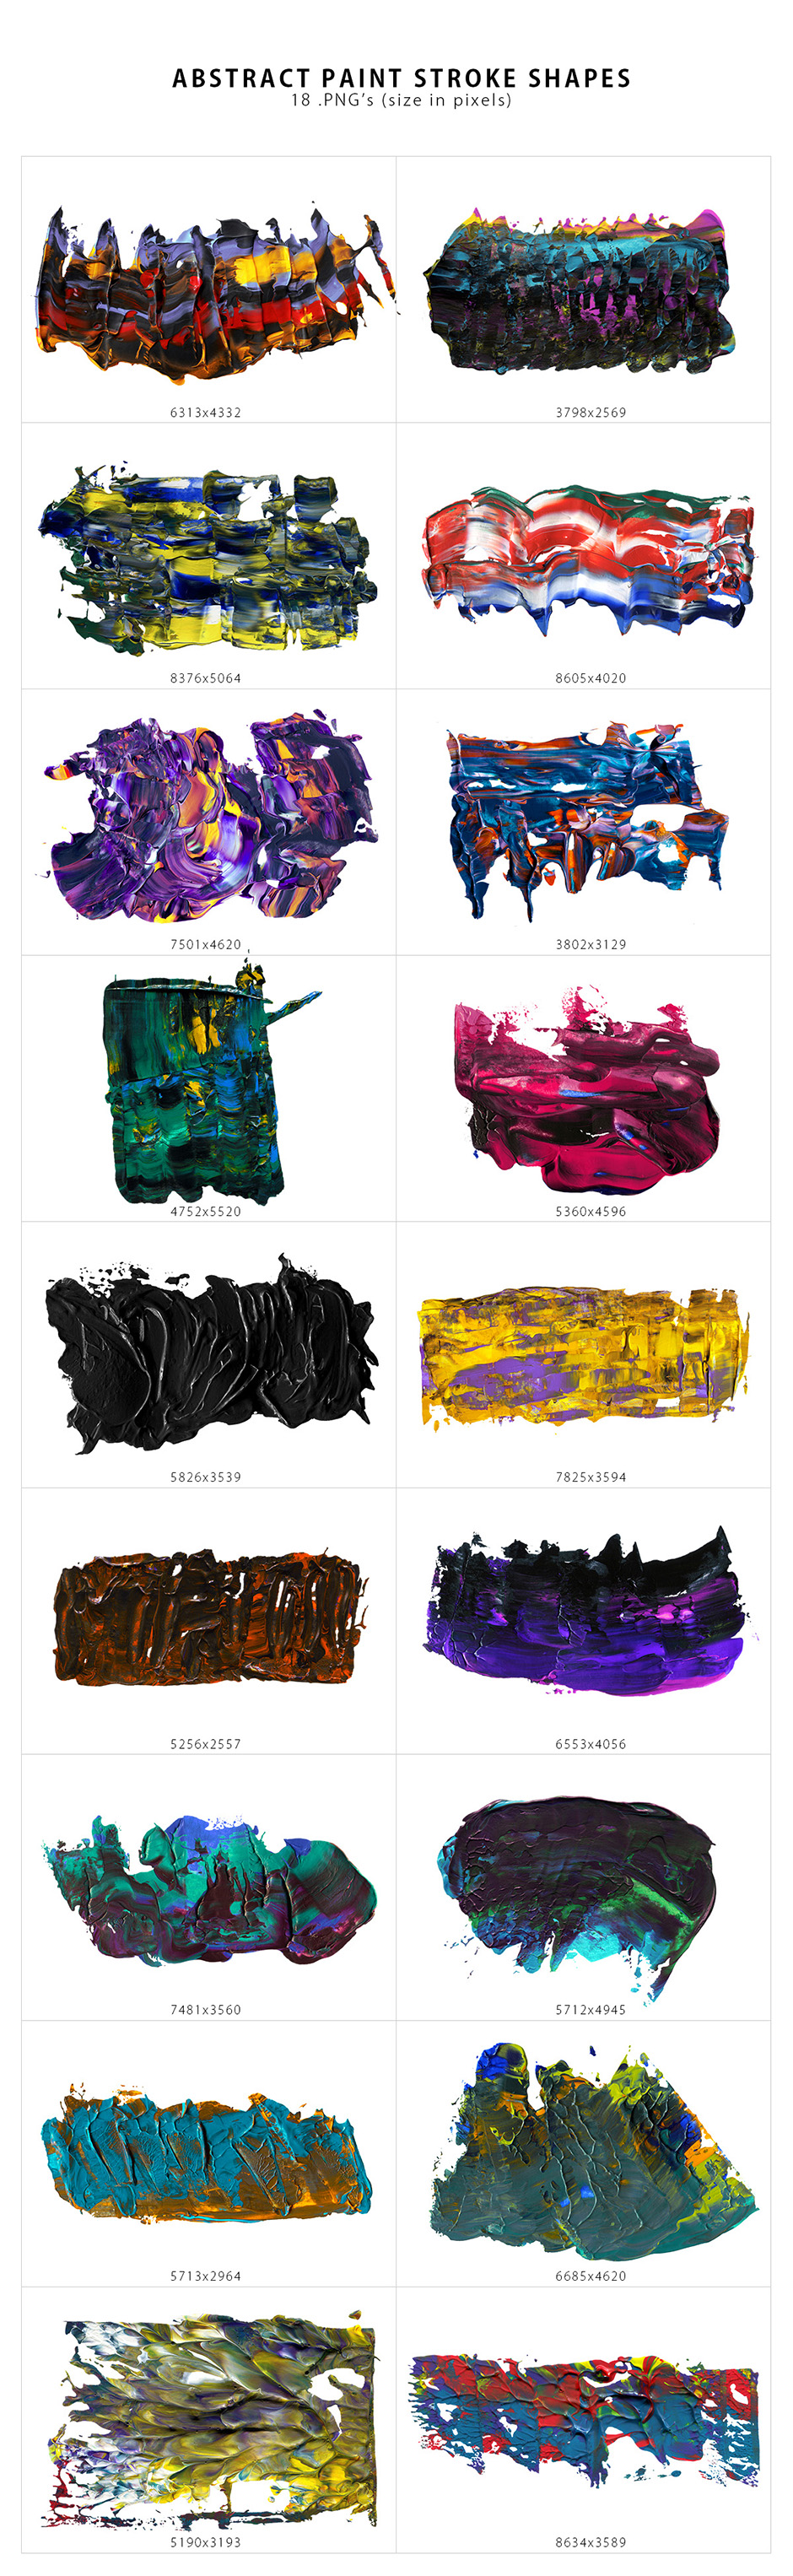 Abstract Paint Shapes prev3